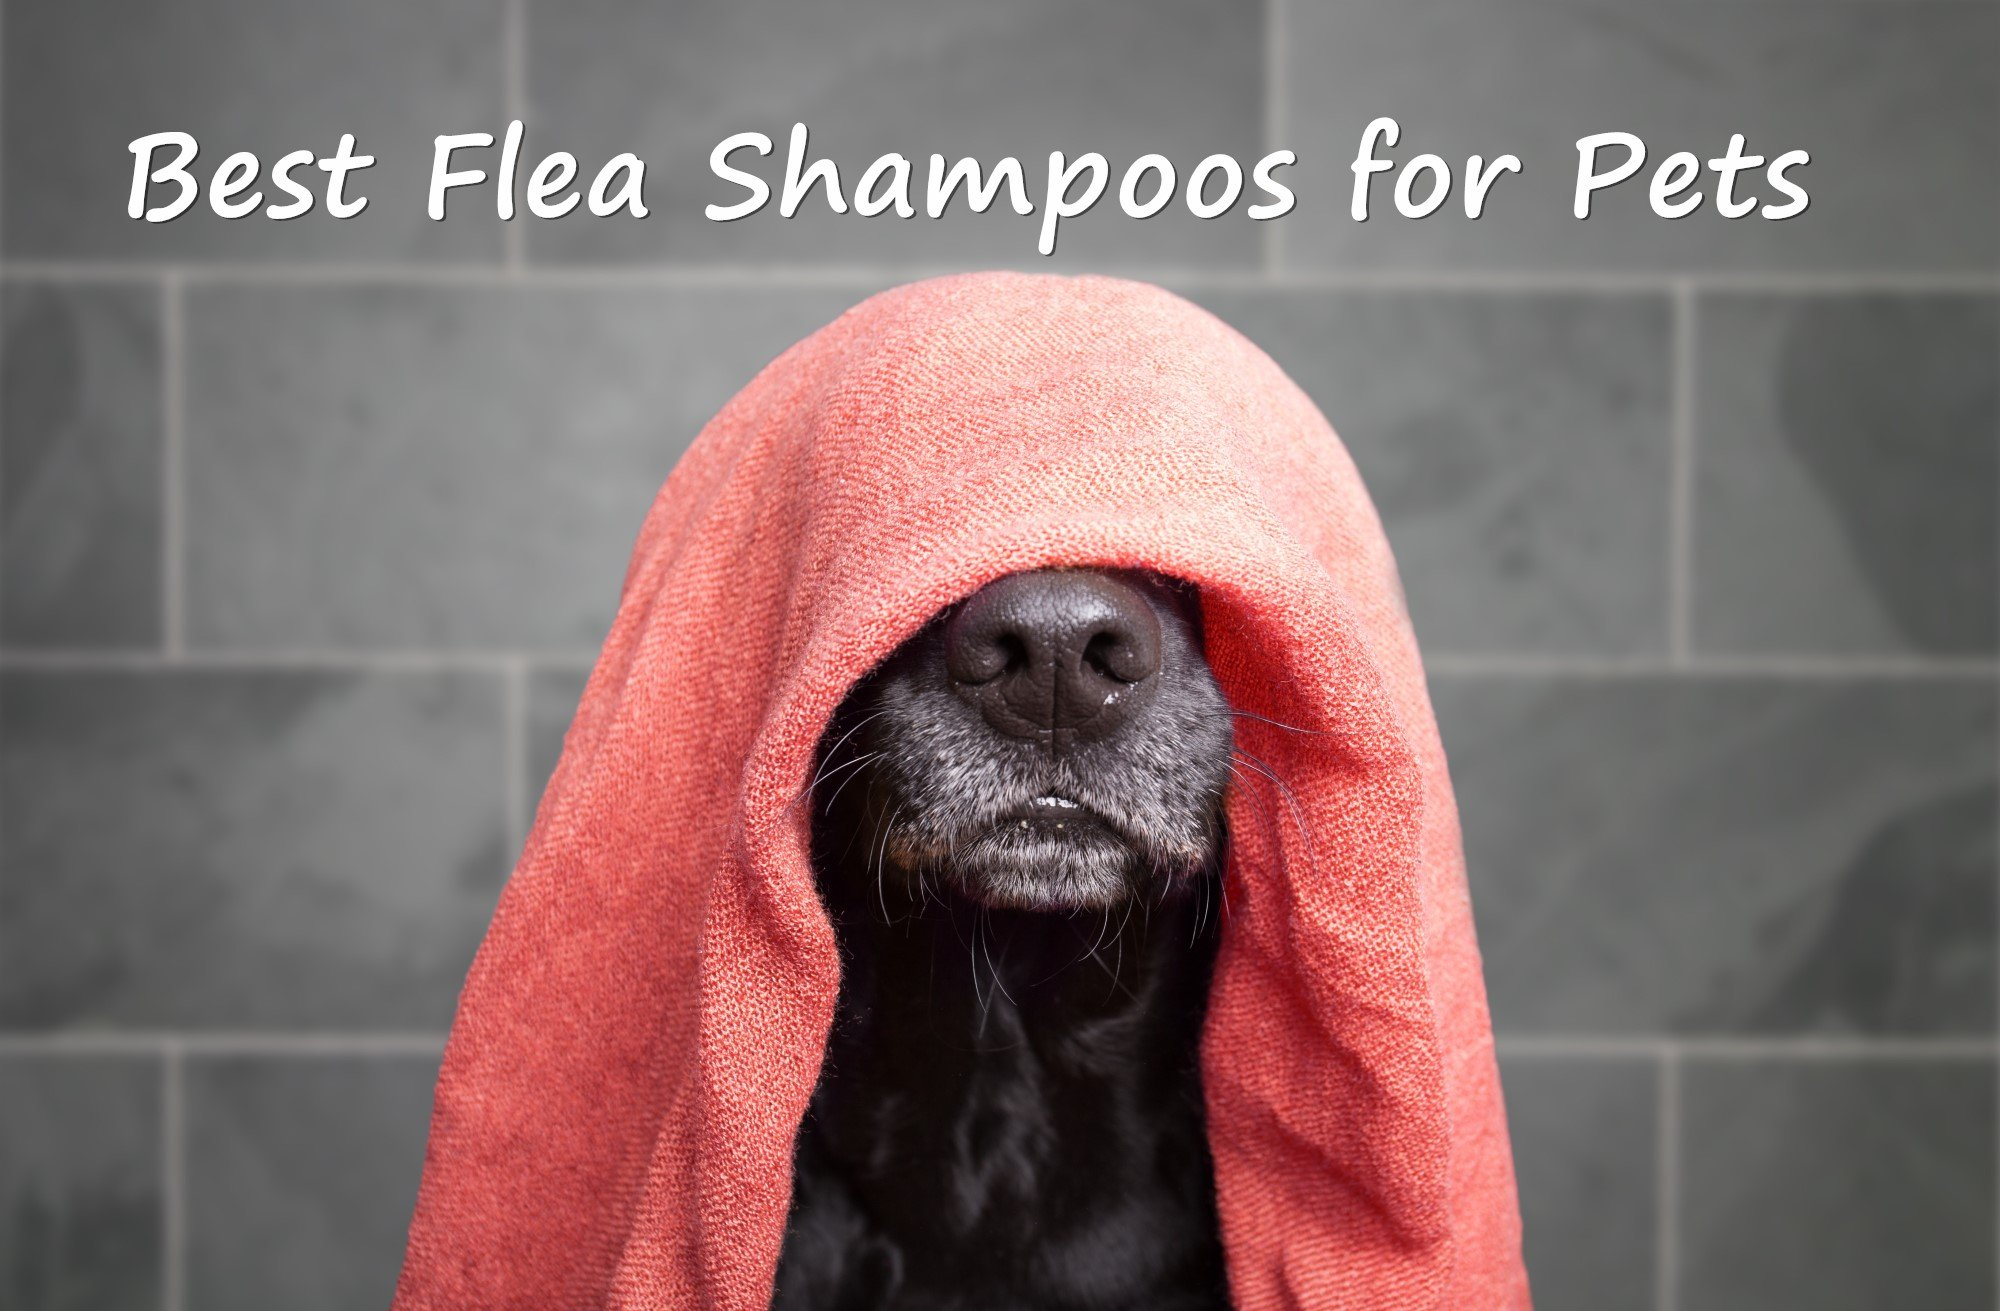 Best Flea Shampoos for Pets